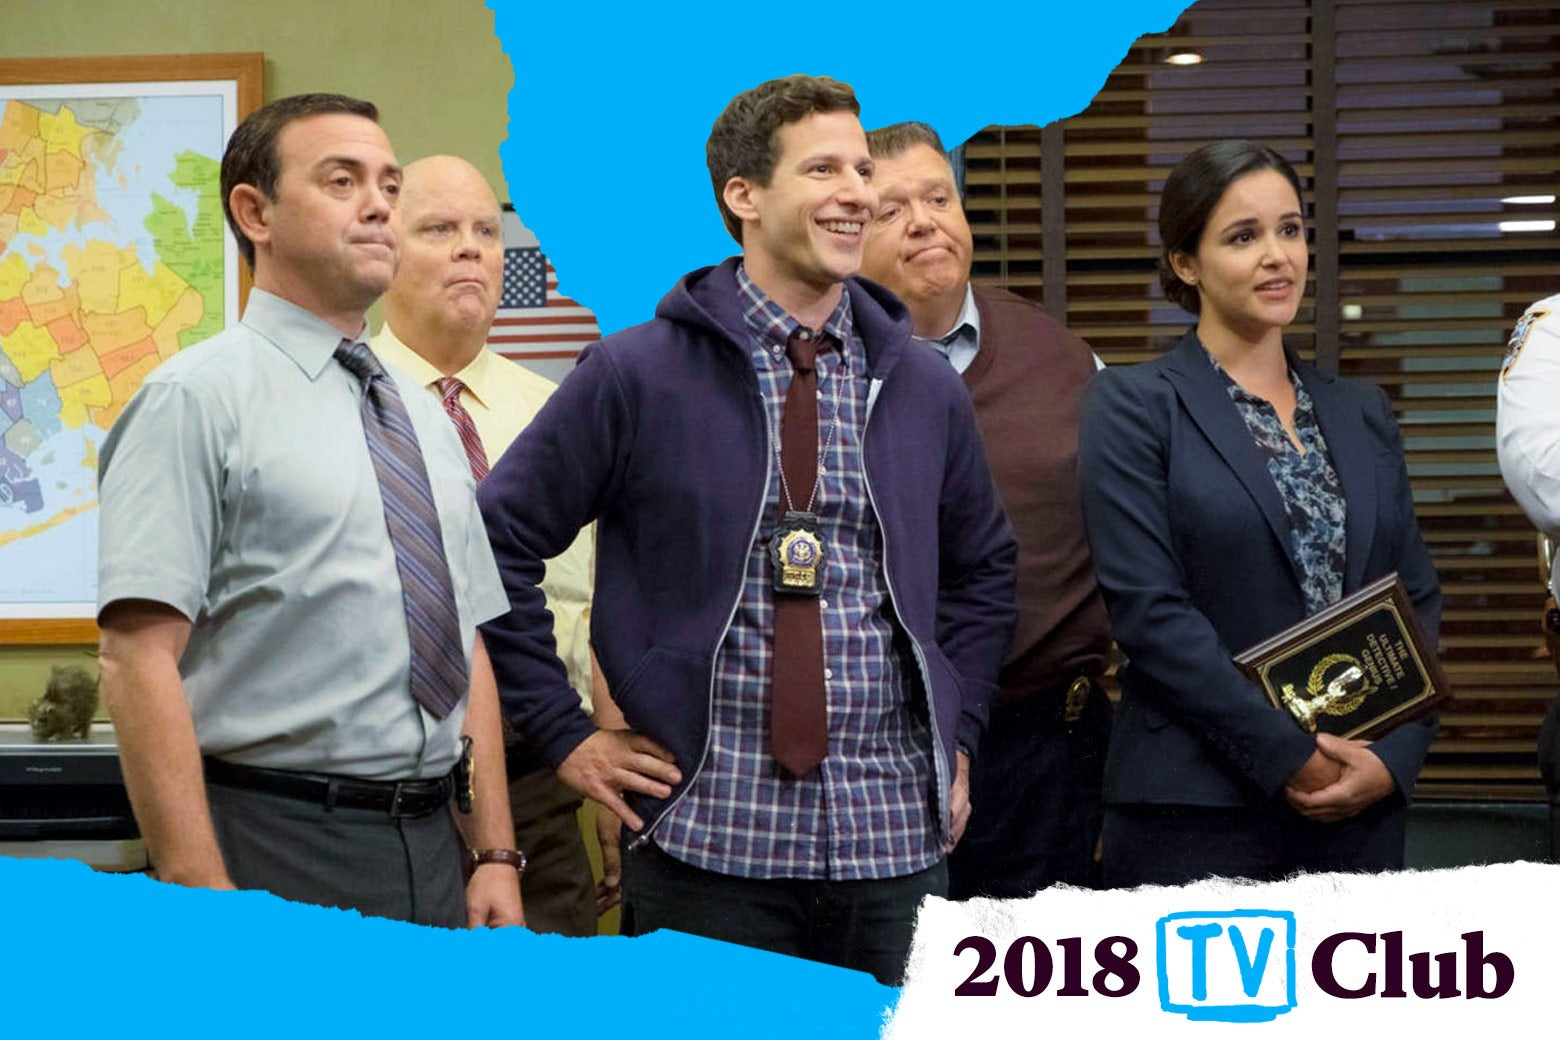 Still from Brooklyn Nine-Nine with the 2018 TV Club logo